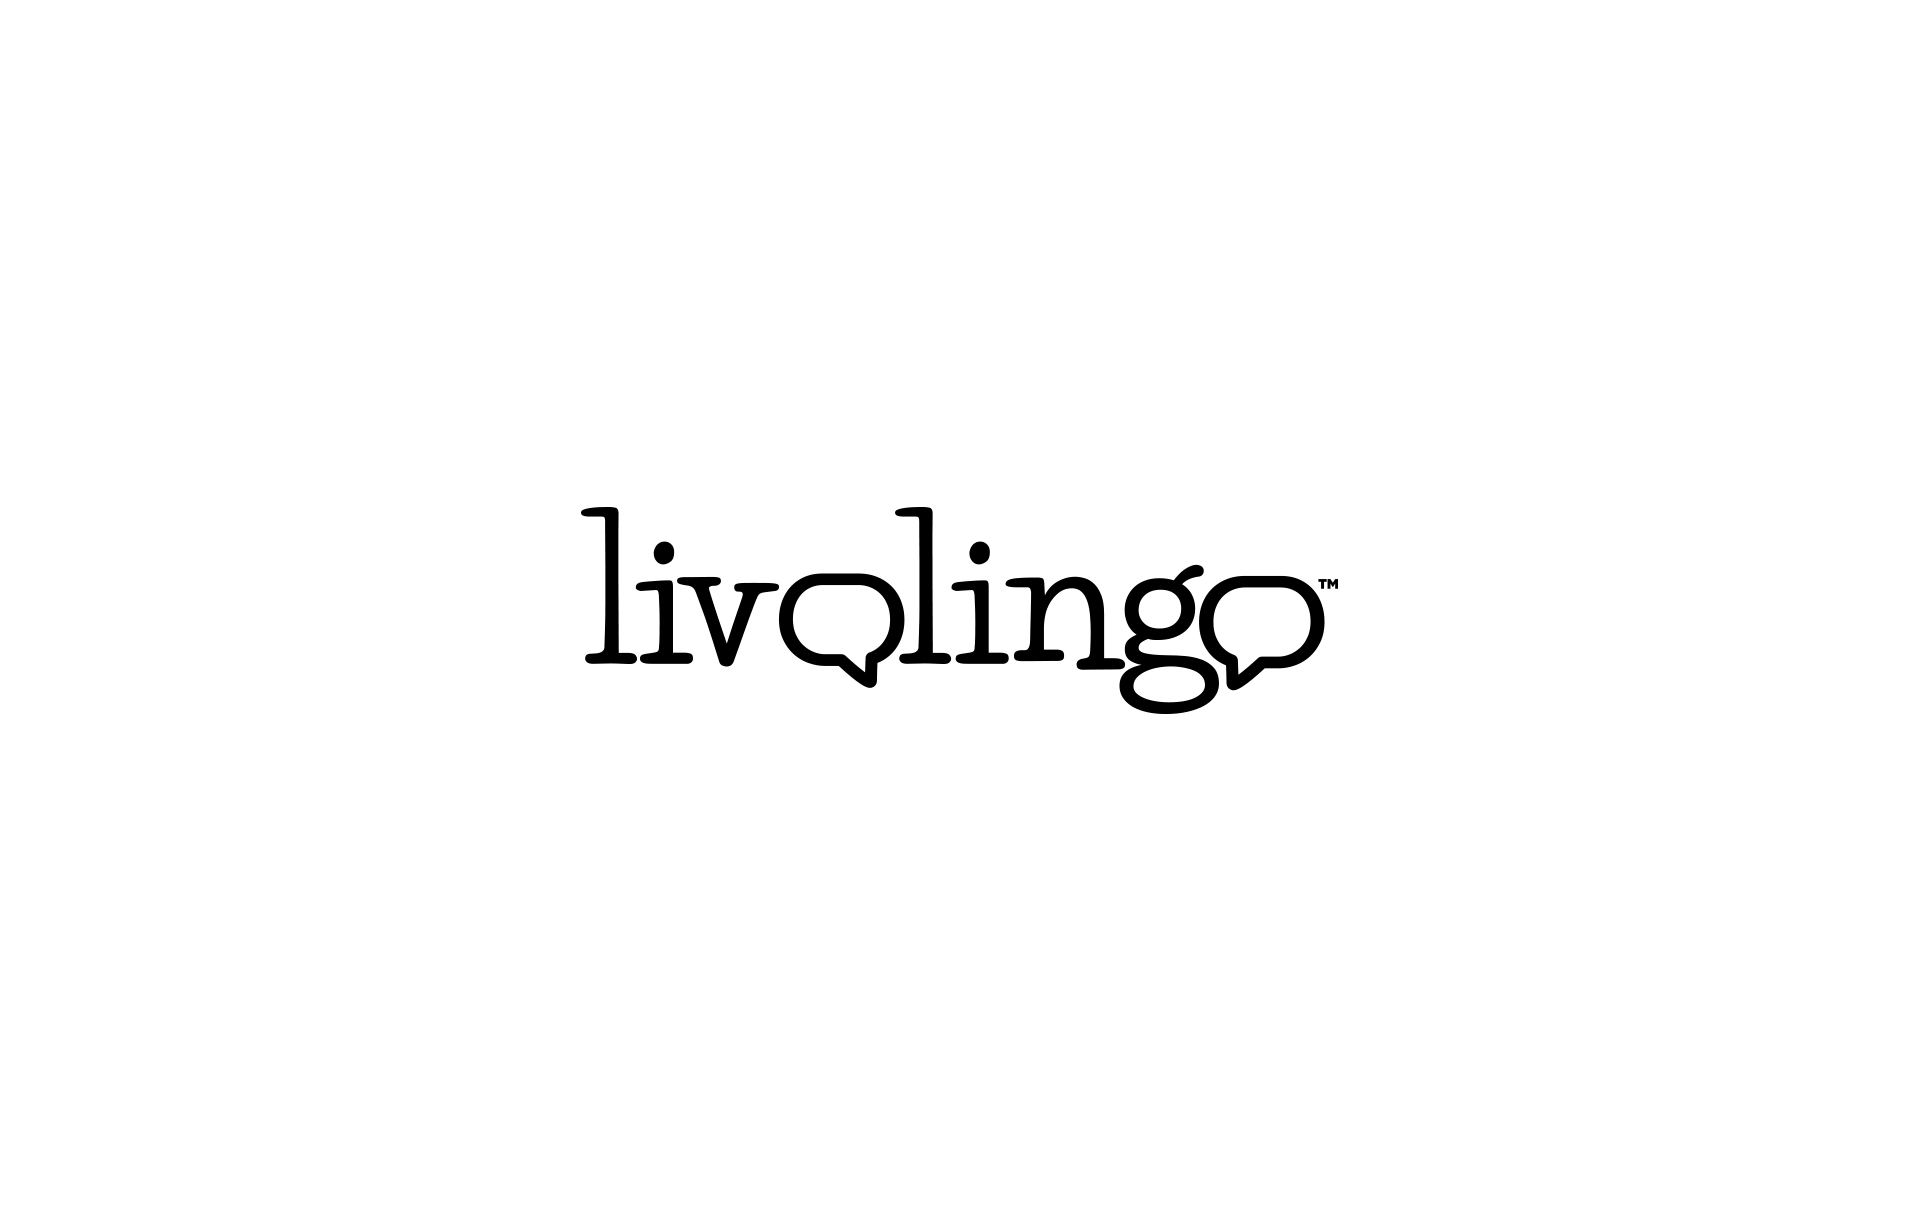 Livolingo Logo Design By Scott Luscombe